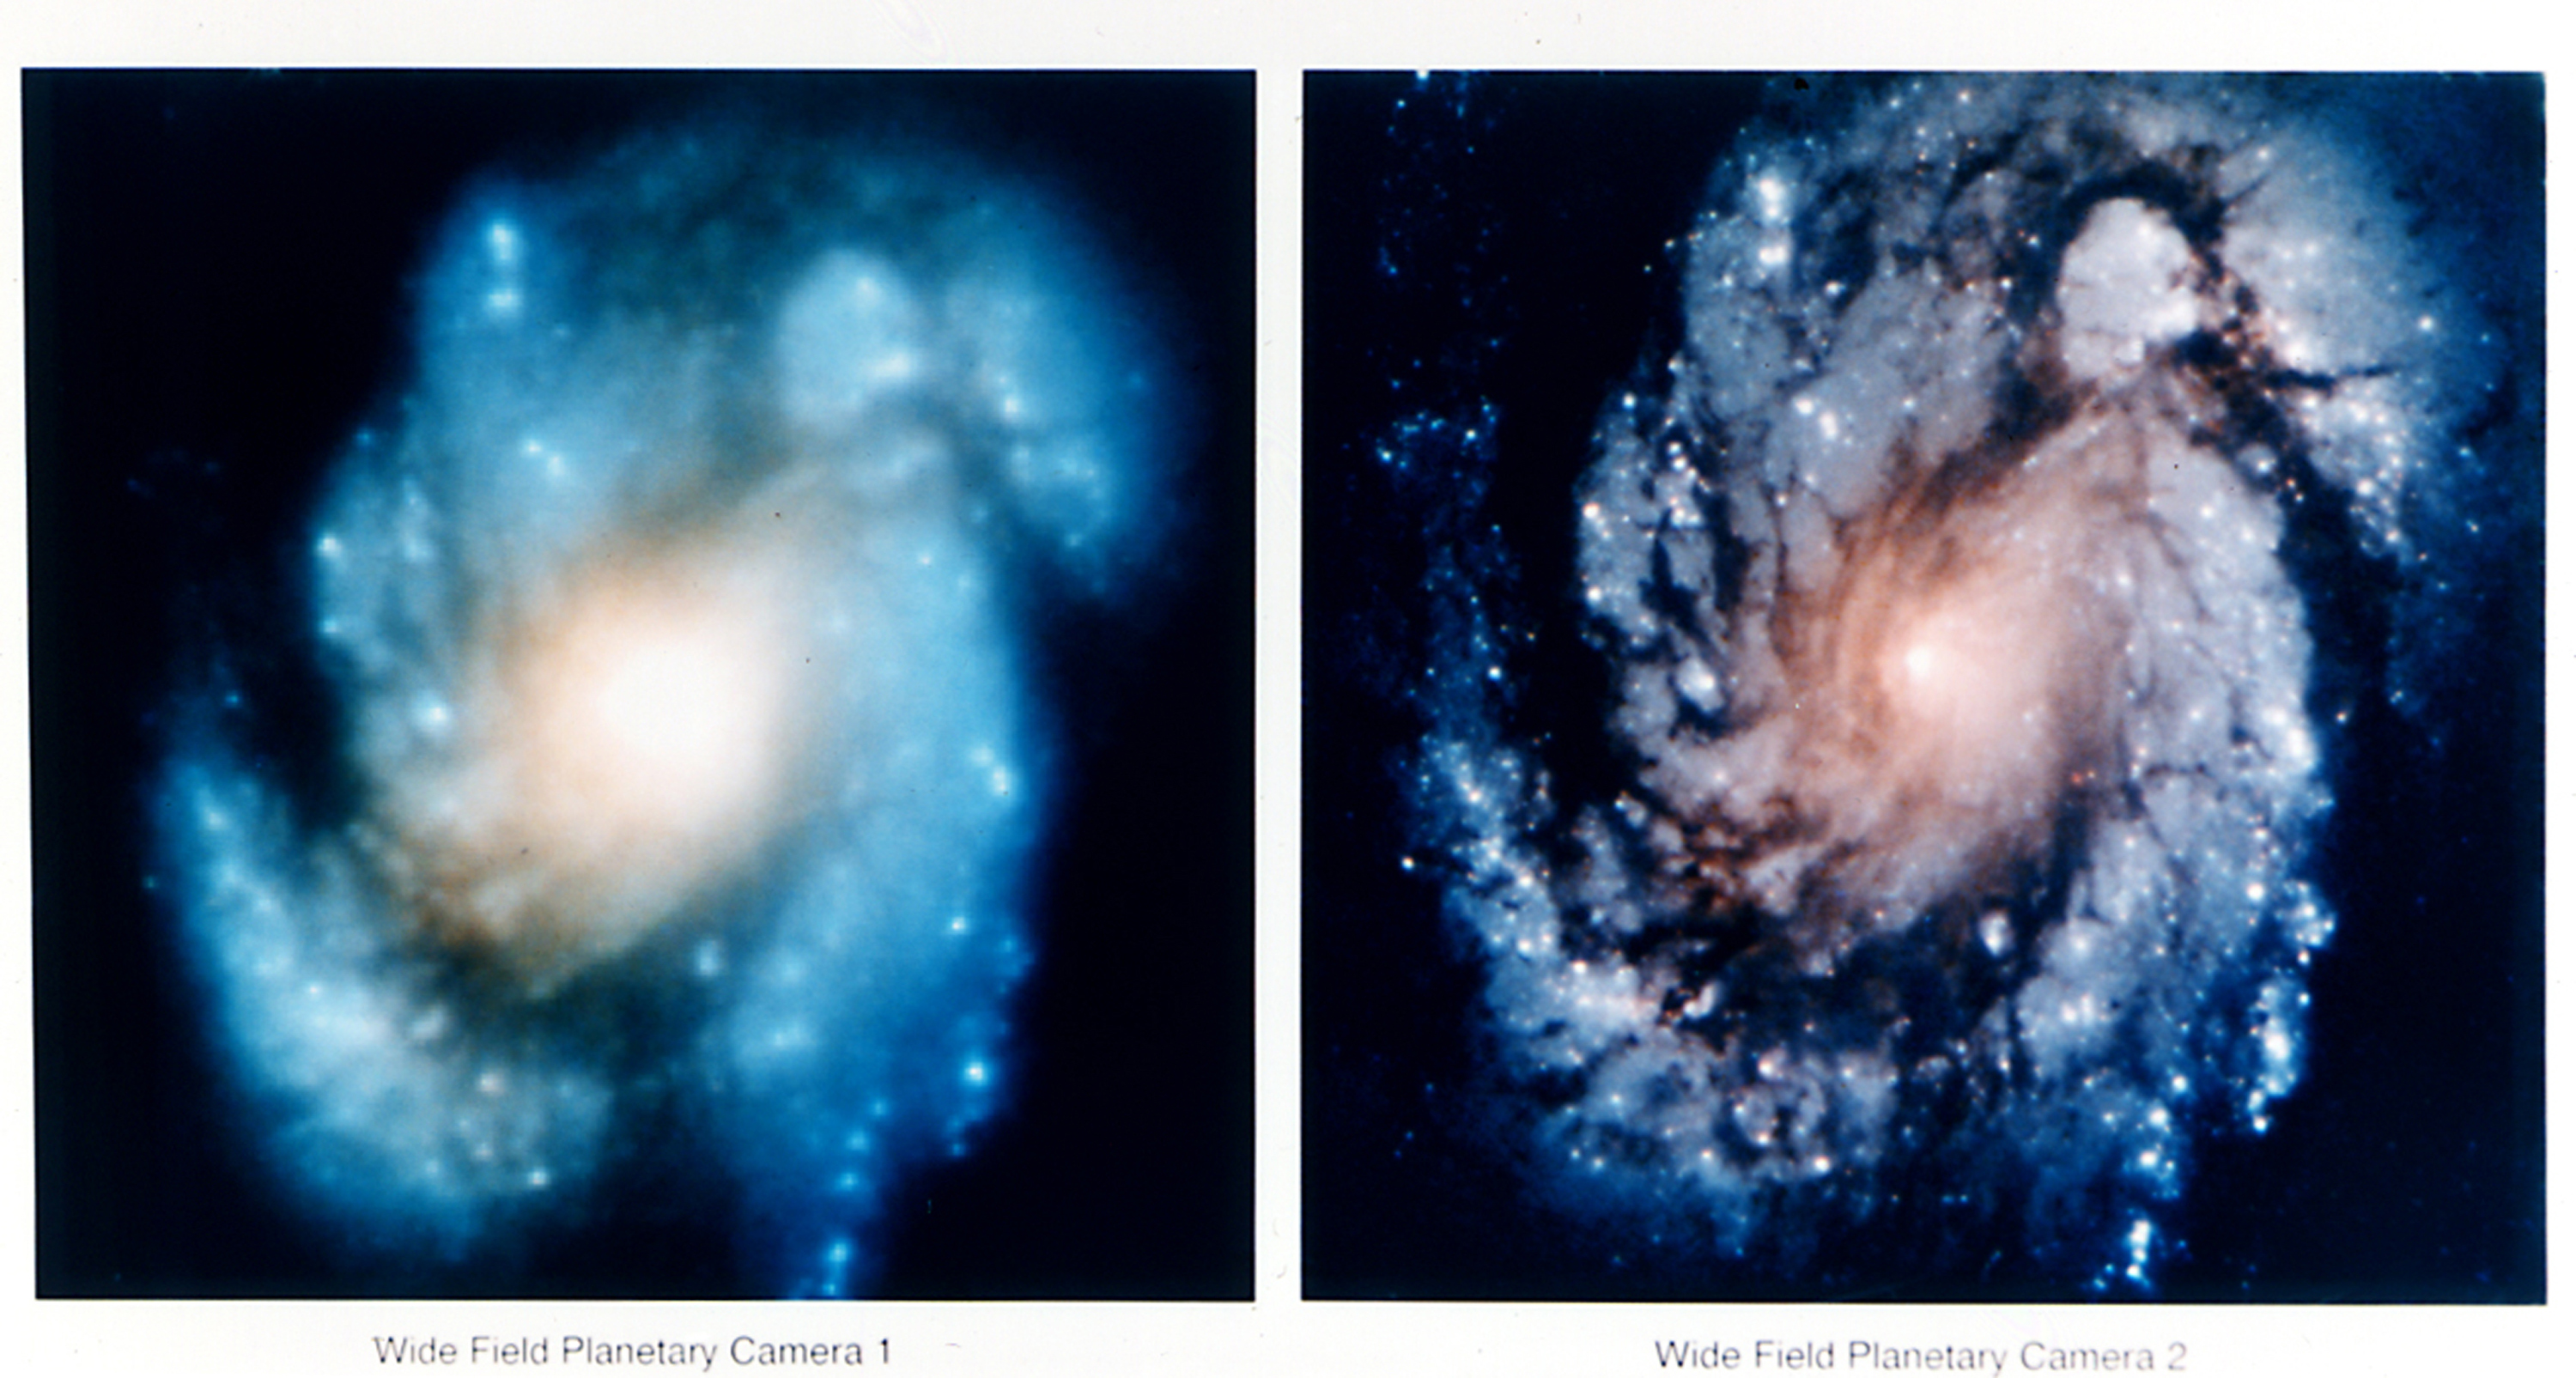 Hubble Images of M100 Before and After Mirror Repair - GPN-2002-000064.jpg